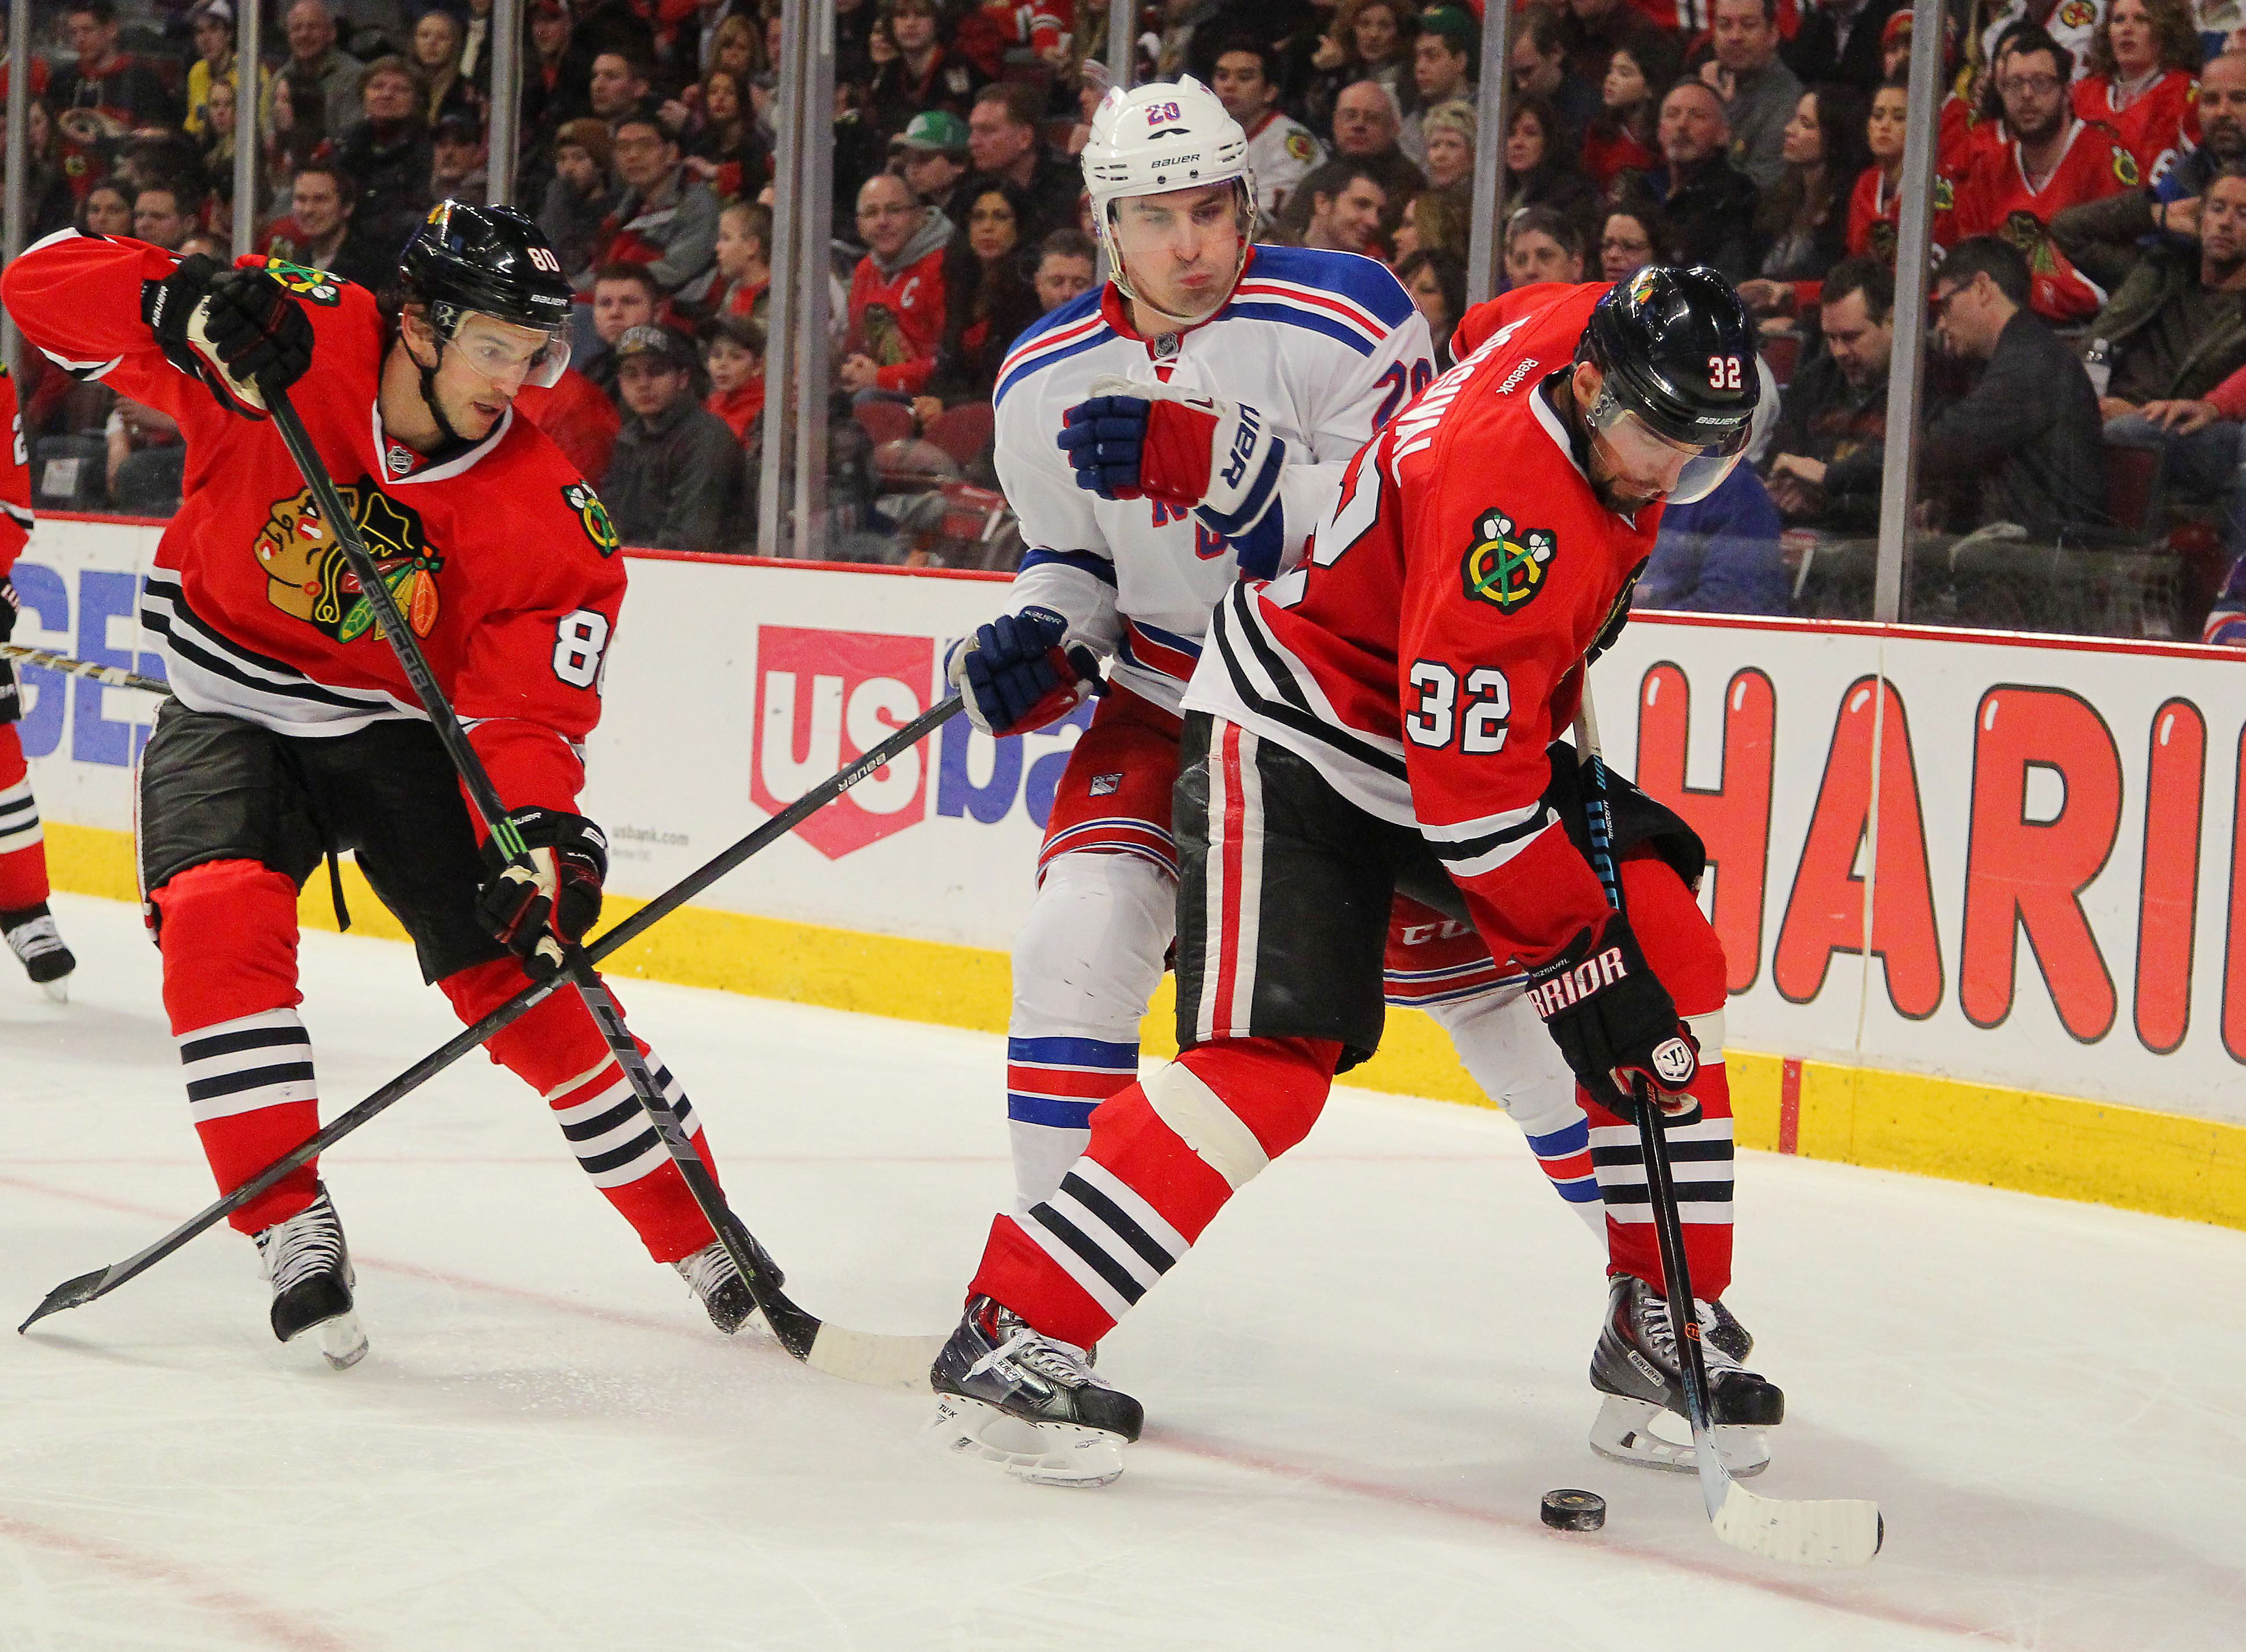 Mar 8, 2015; Chicago, IL, USA; Chicago Blackhawks defenseman Michal Rozsival (32) is pursued by New York Rangers left wing Chris Kreider (20) during the third period at the United Center. New York won 1-0 in overtime. Mandatory Credit: Dennis Wierzbicki-USA TODAY Sports